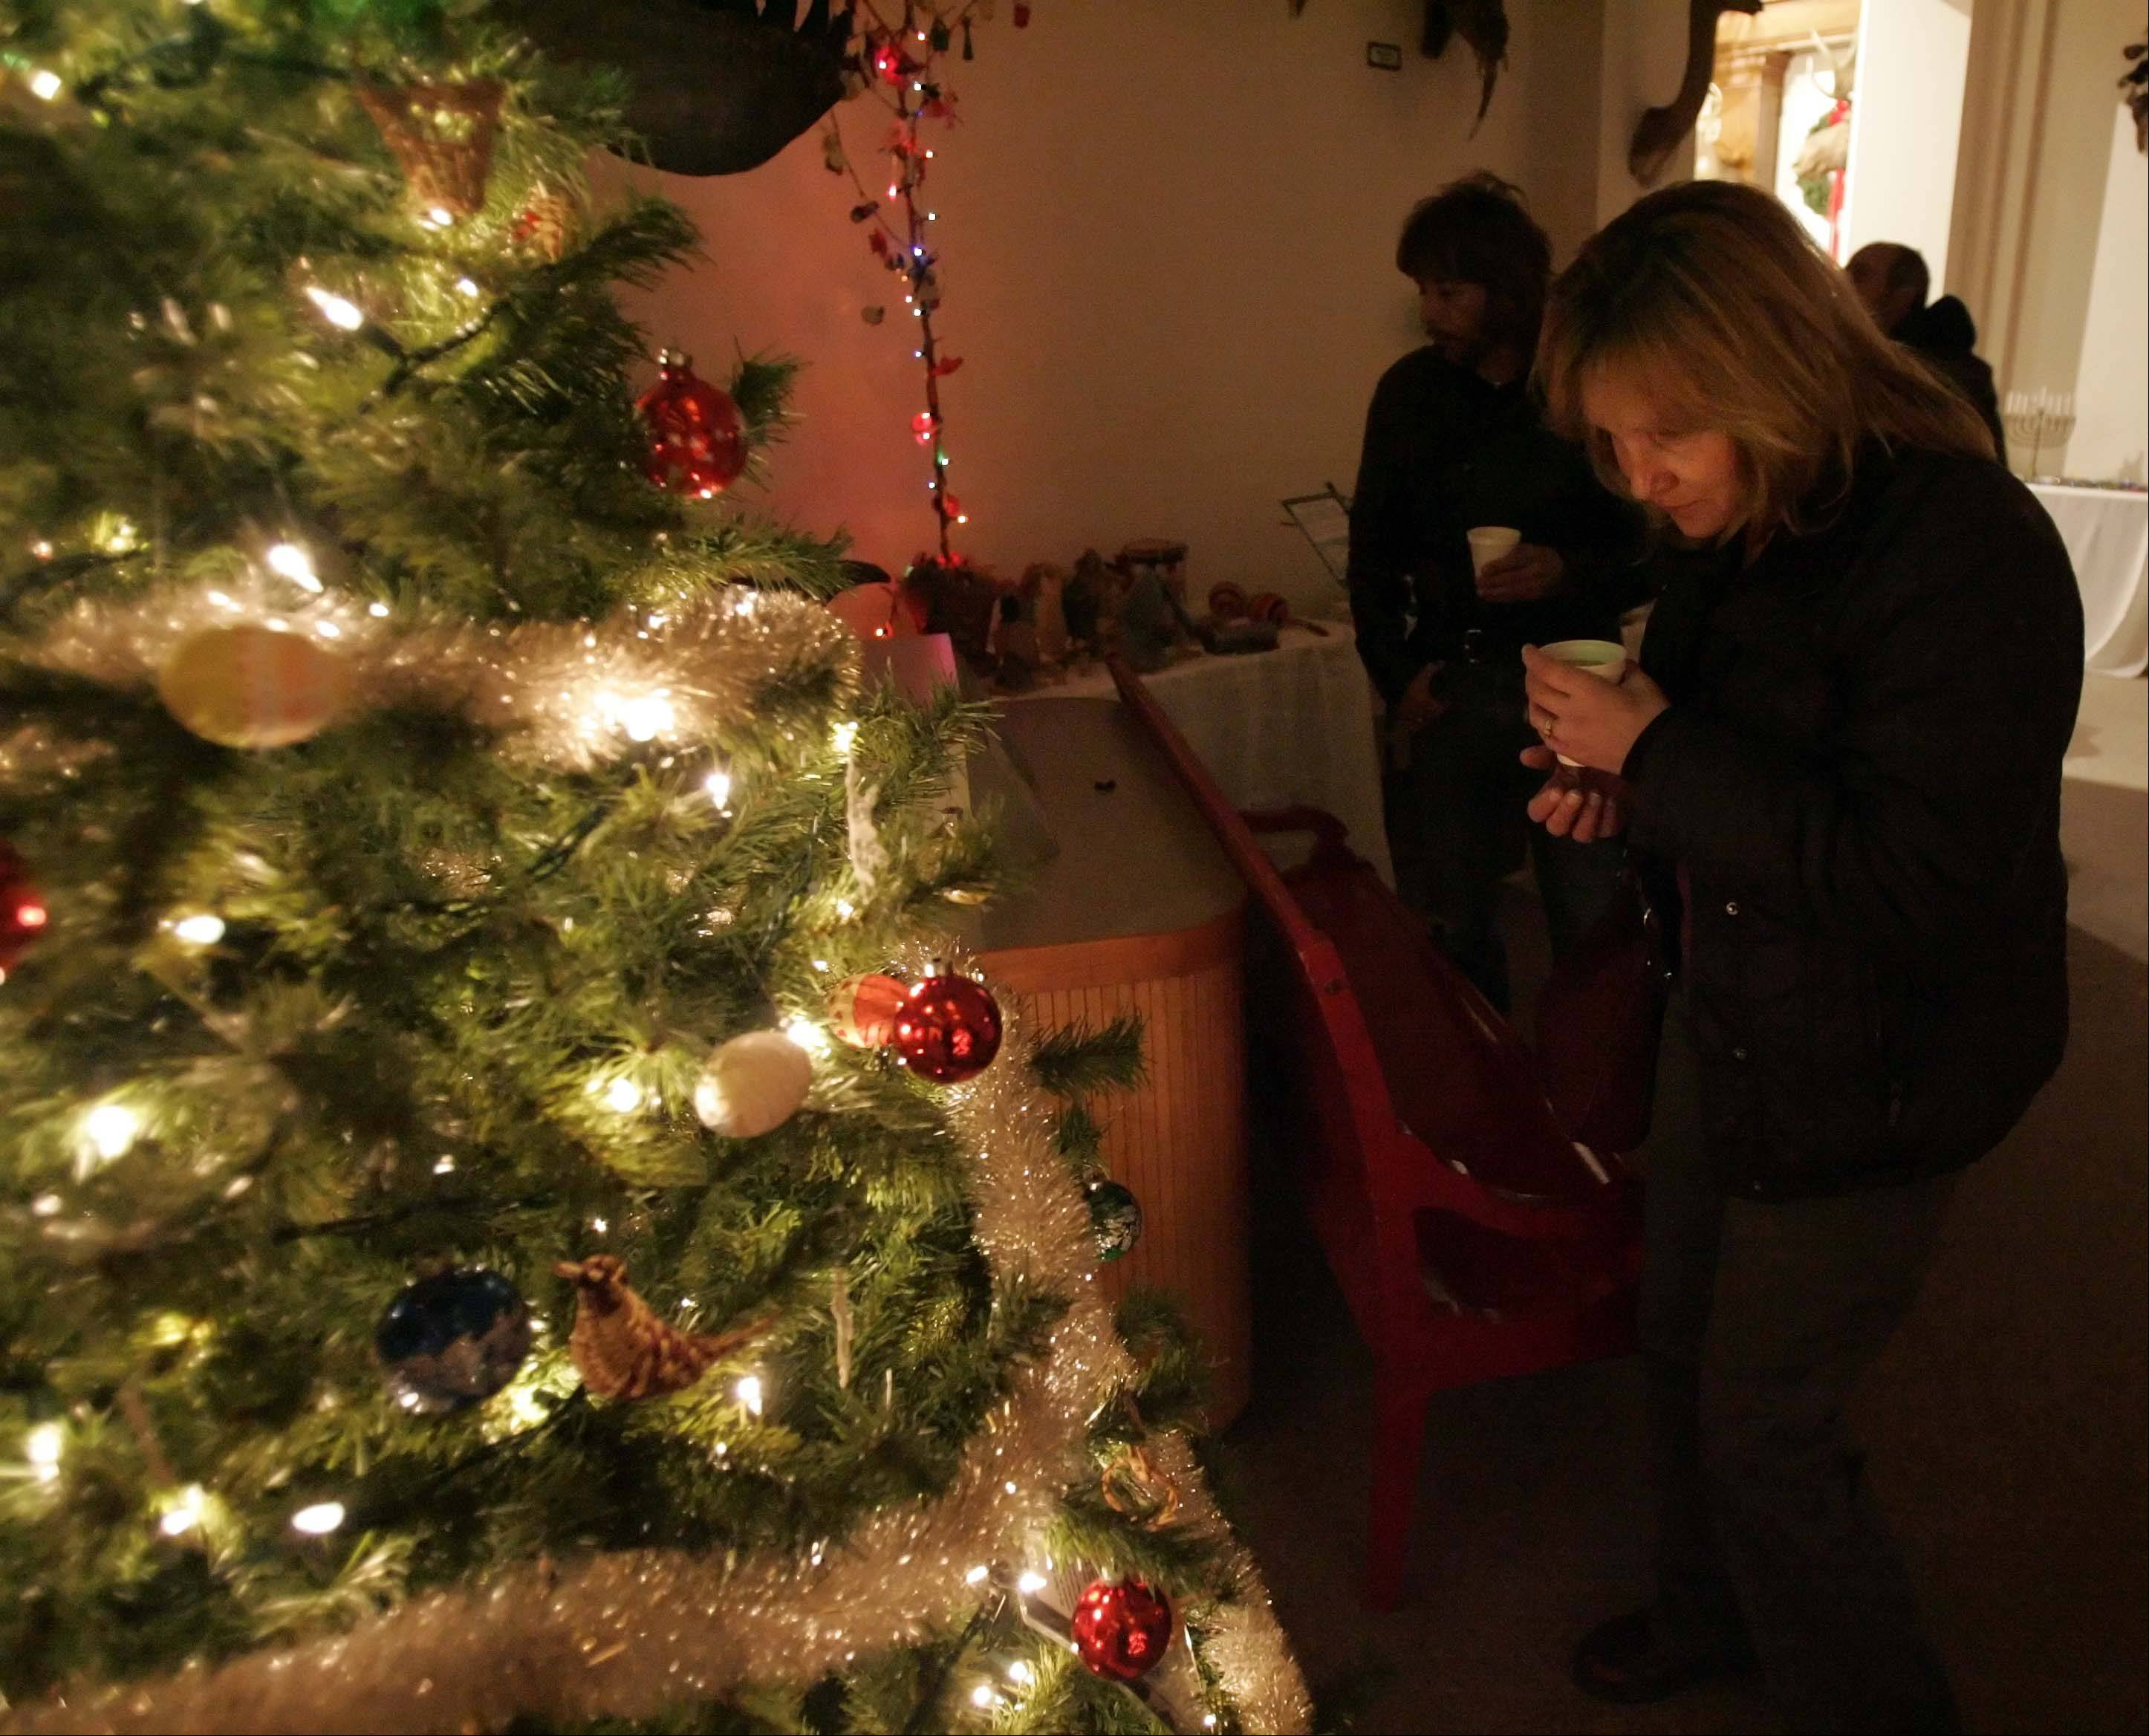 Mary Martinez of Elgin checks out holiday decorations while sipping cider at a previous Ancient Cultural Traditions and the Solstice program at the Elgin Public Museum. This year�s program will be held Saturday, Dec. 21.